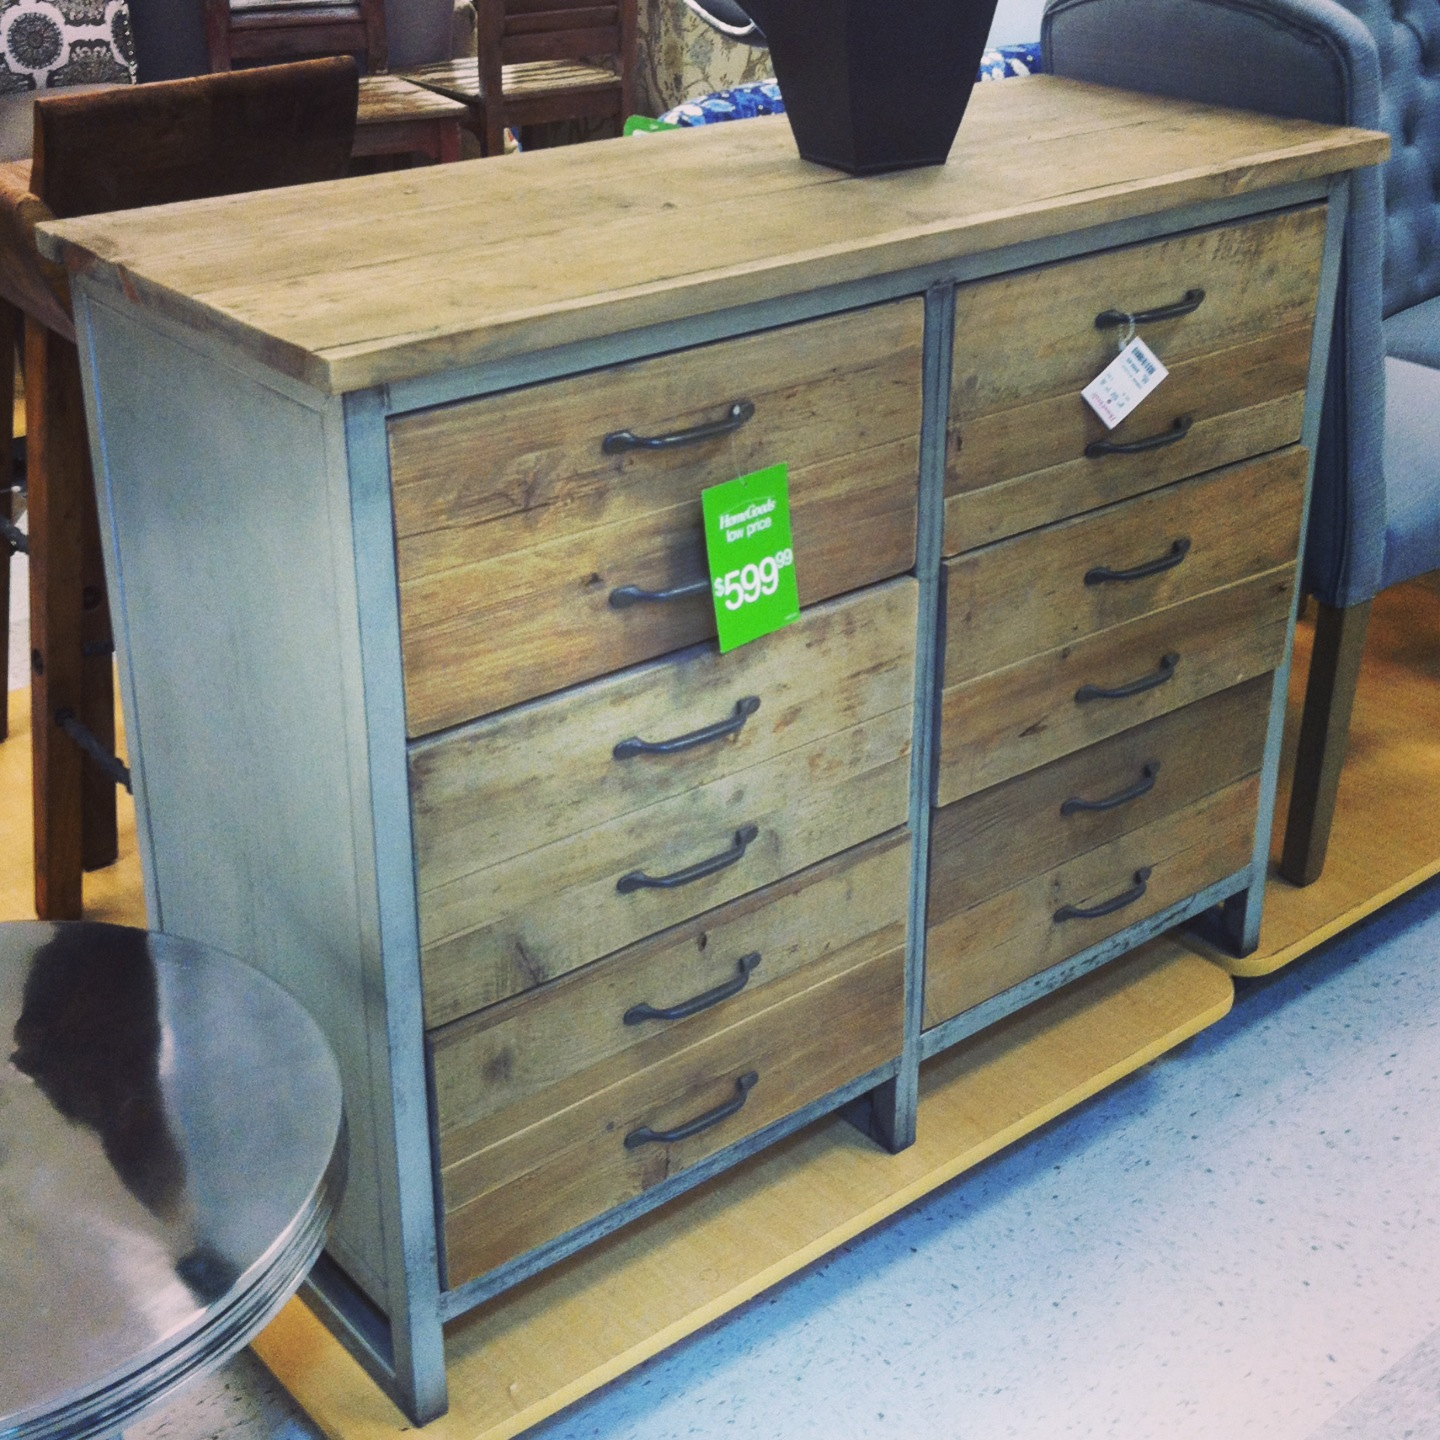 I thought this dresser was interesting  The drawers were deep  I loved the  contrast of the multiple colors  I found it to be rustic  and very cool. I m obsessed with Homegoods    Bake  Create  Love